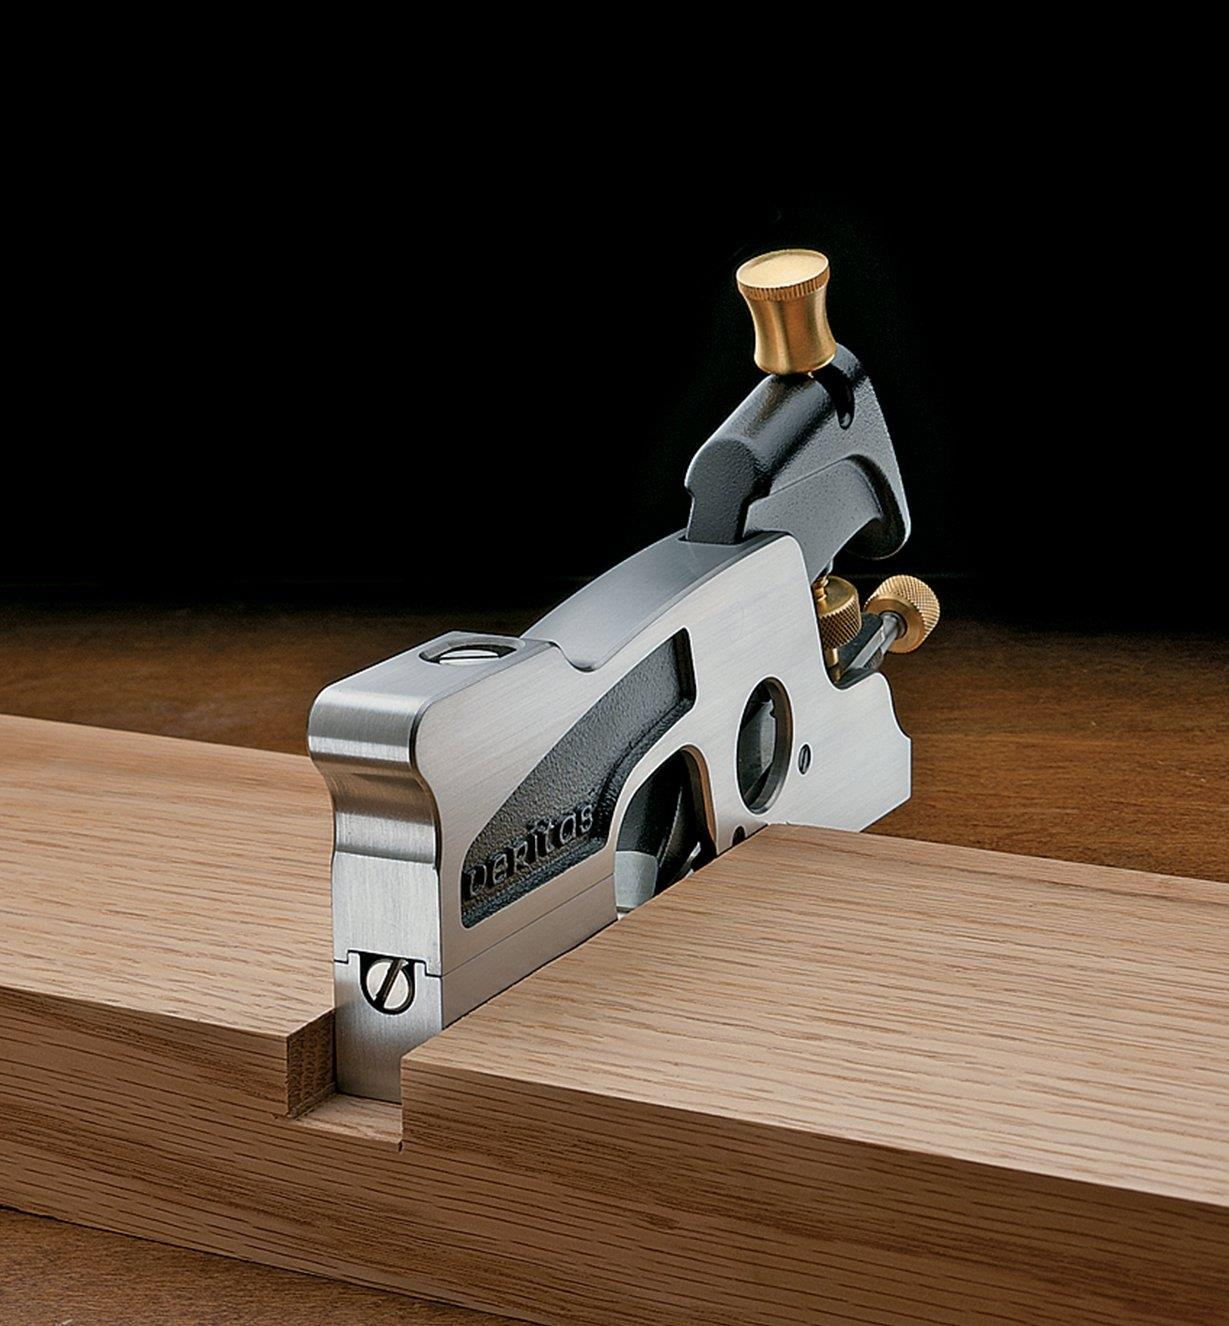 Medium shoulder plane